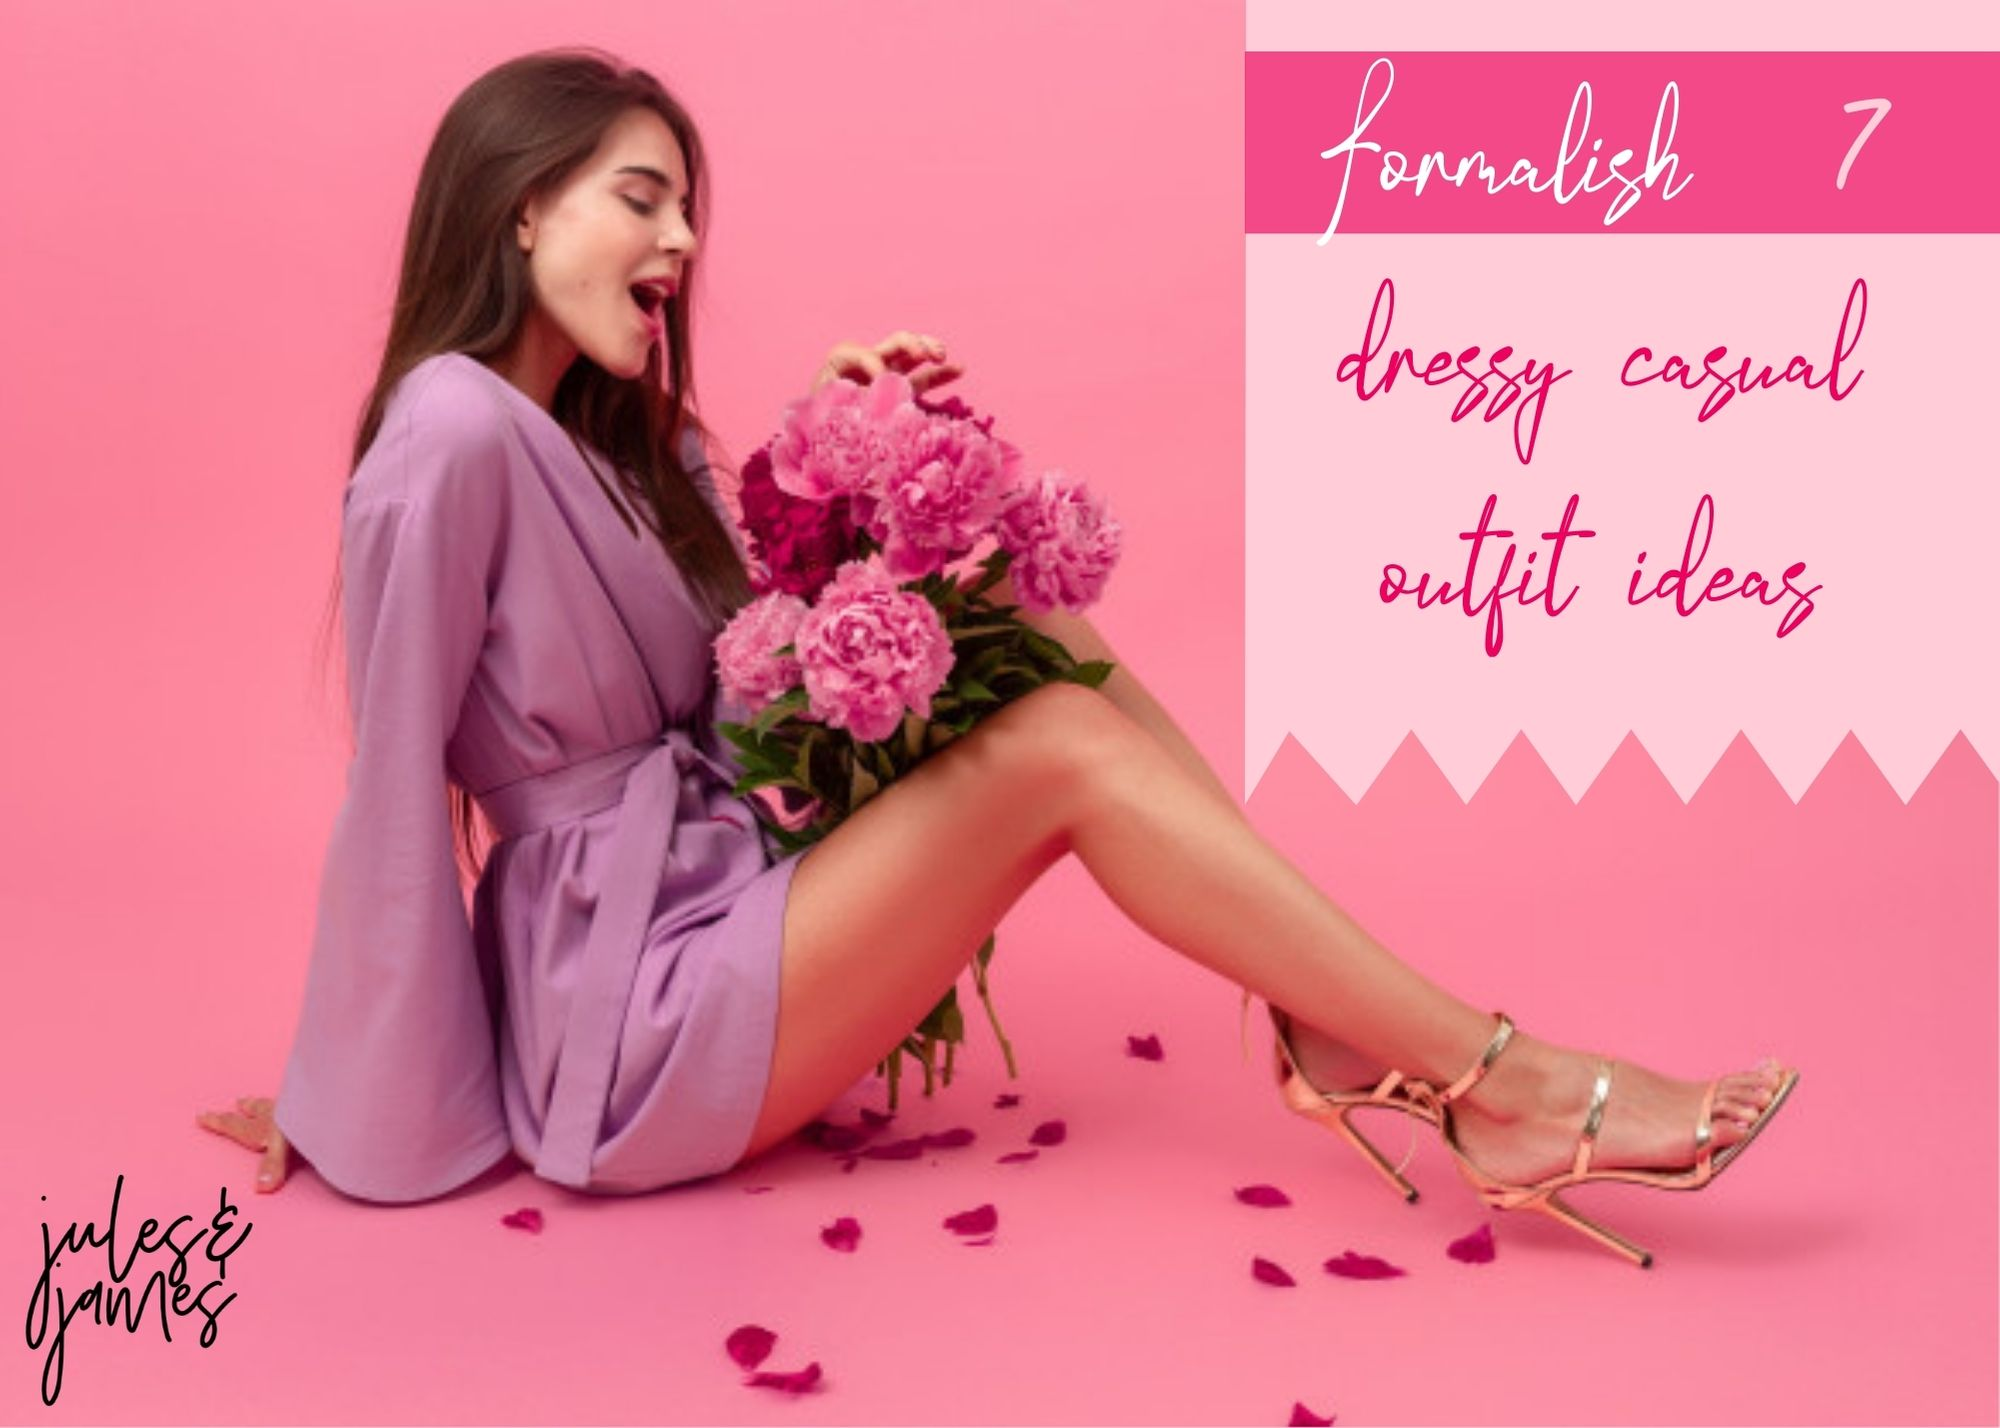 online clothing boutique, Formalish: 7 dressy casual outfit ideas